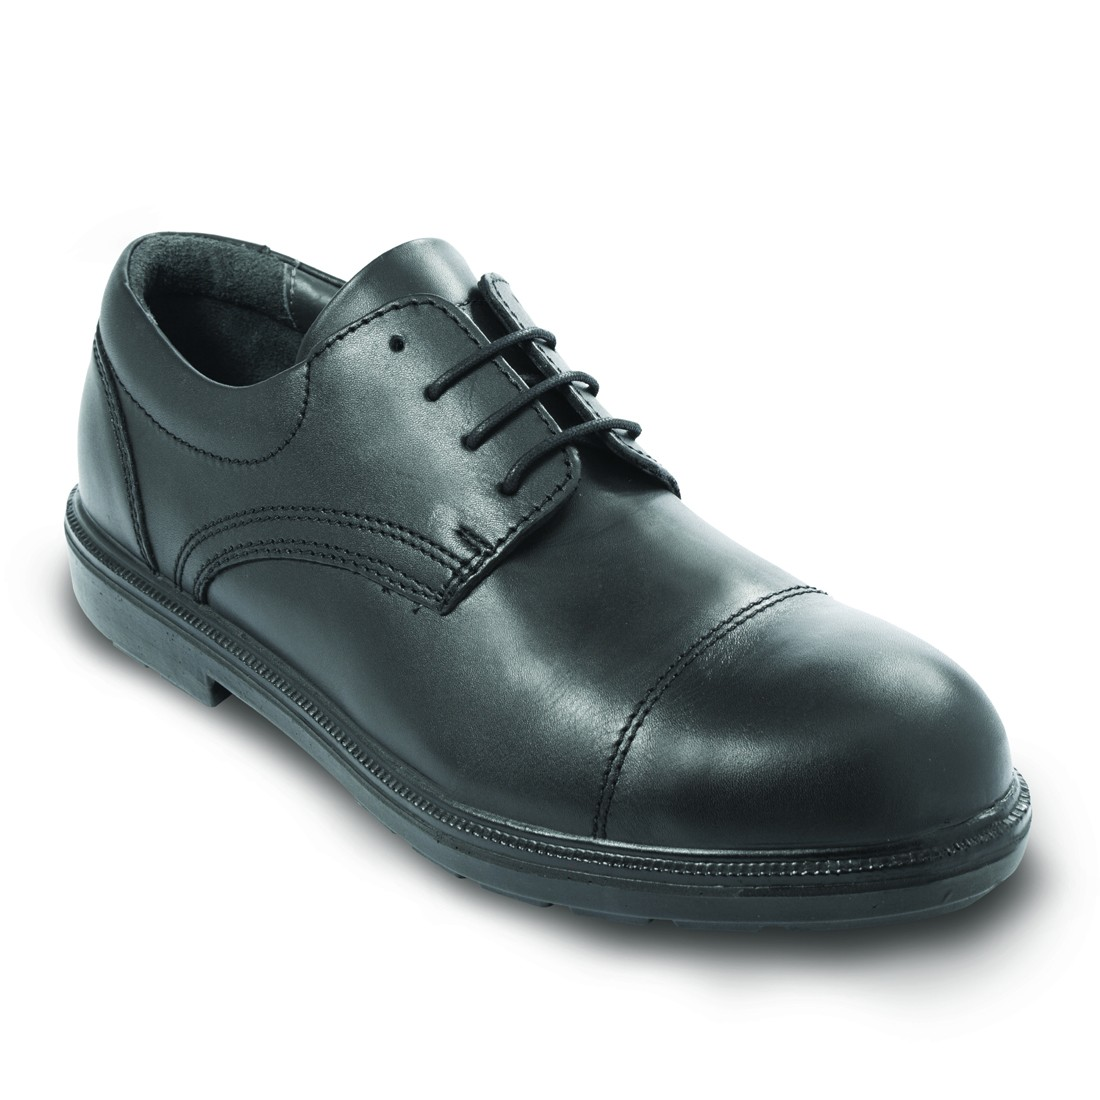 Cambridge Black Leather S3 Smart Executive Safety Shoes From Lavoro